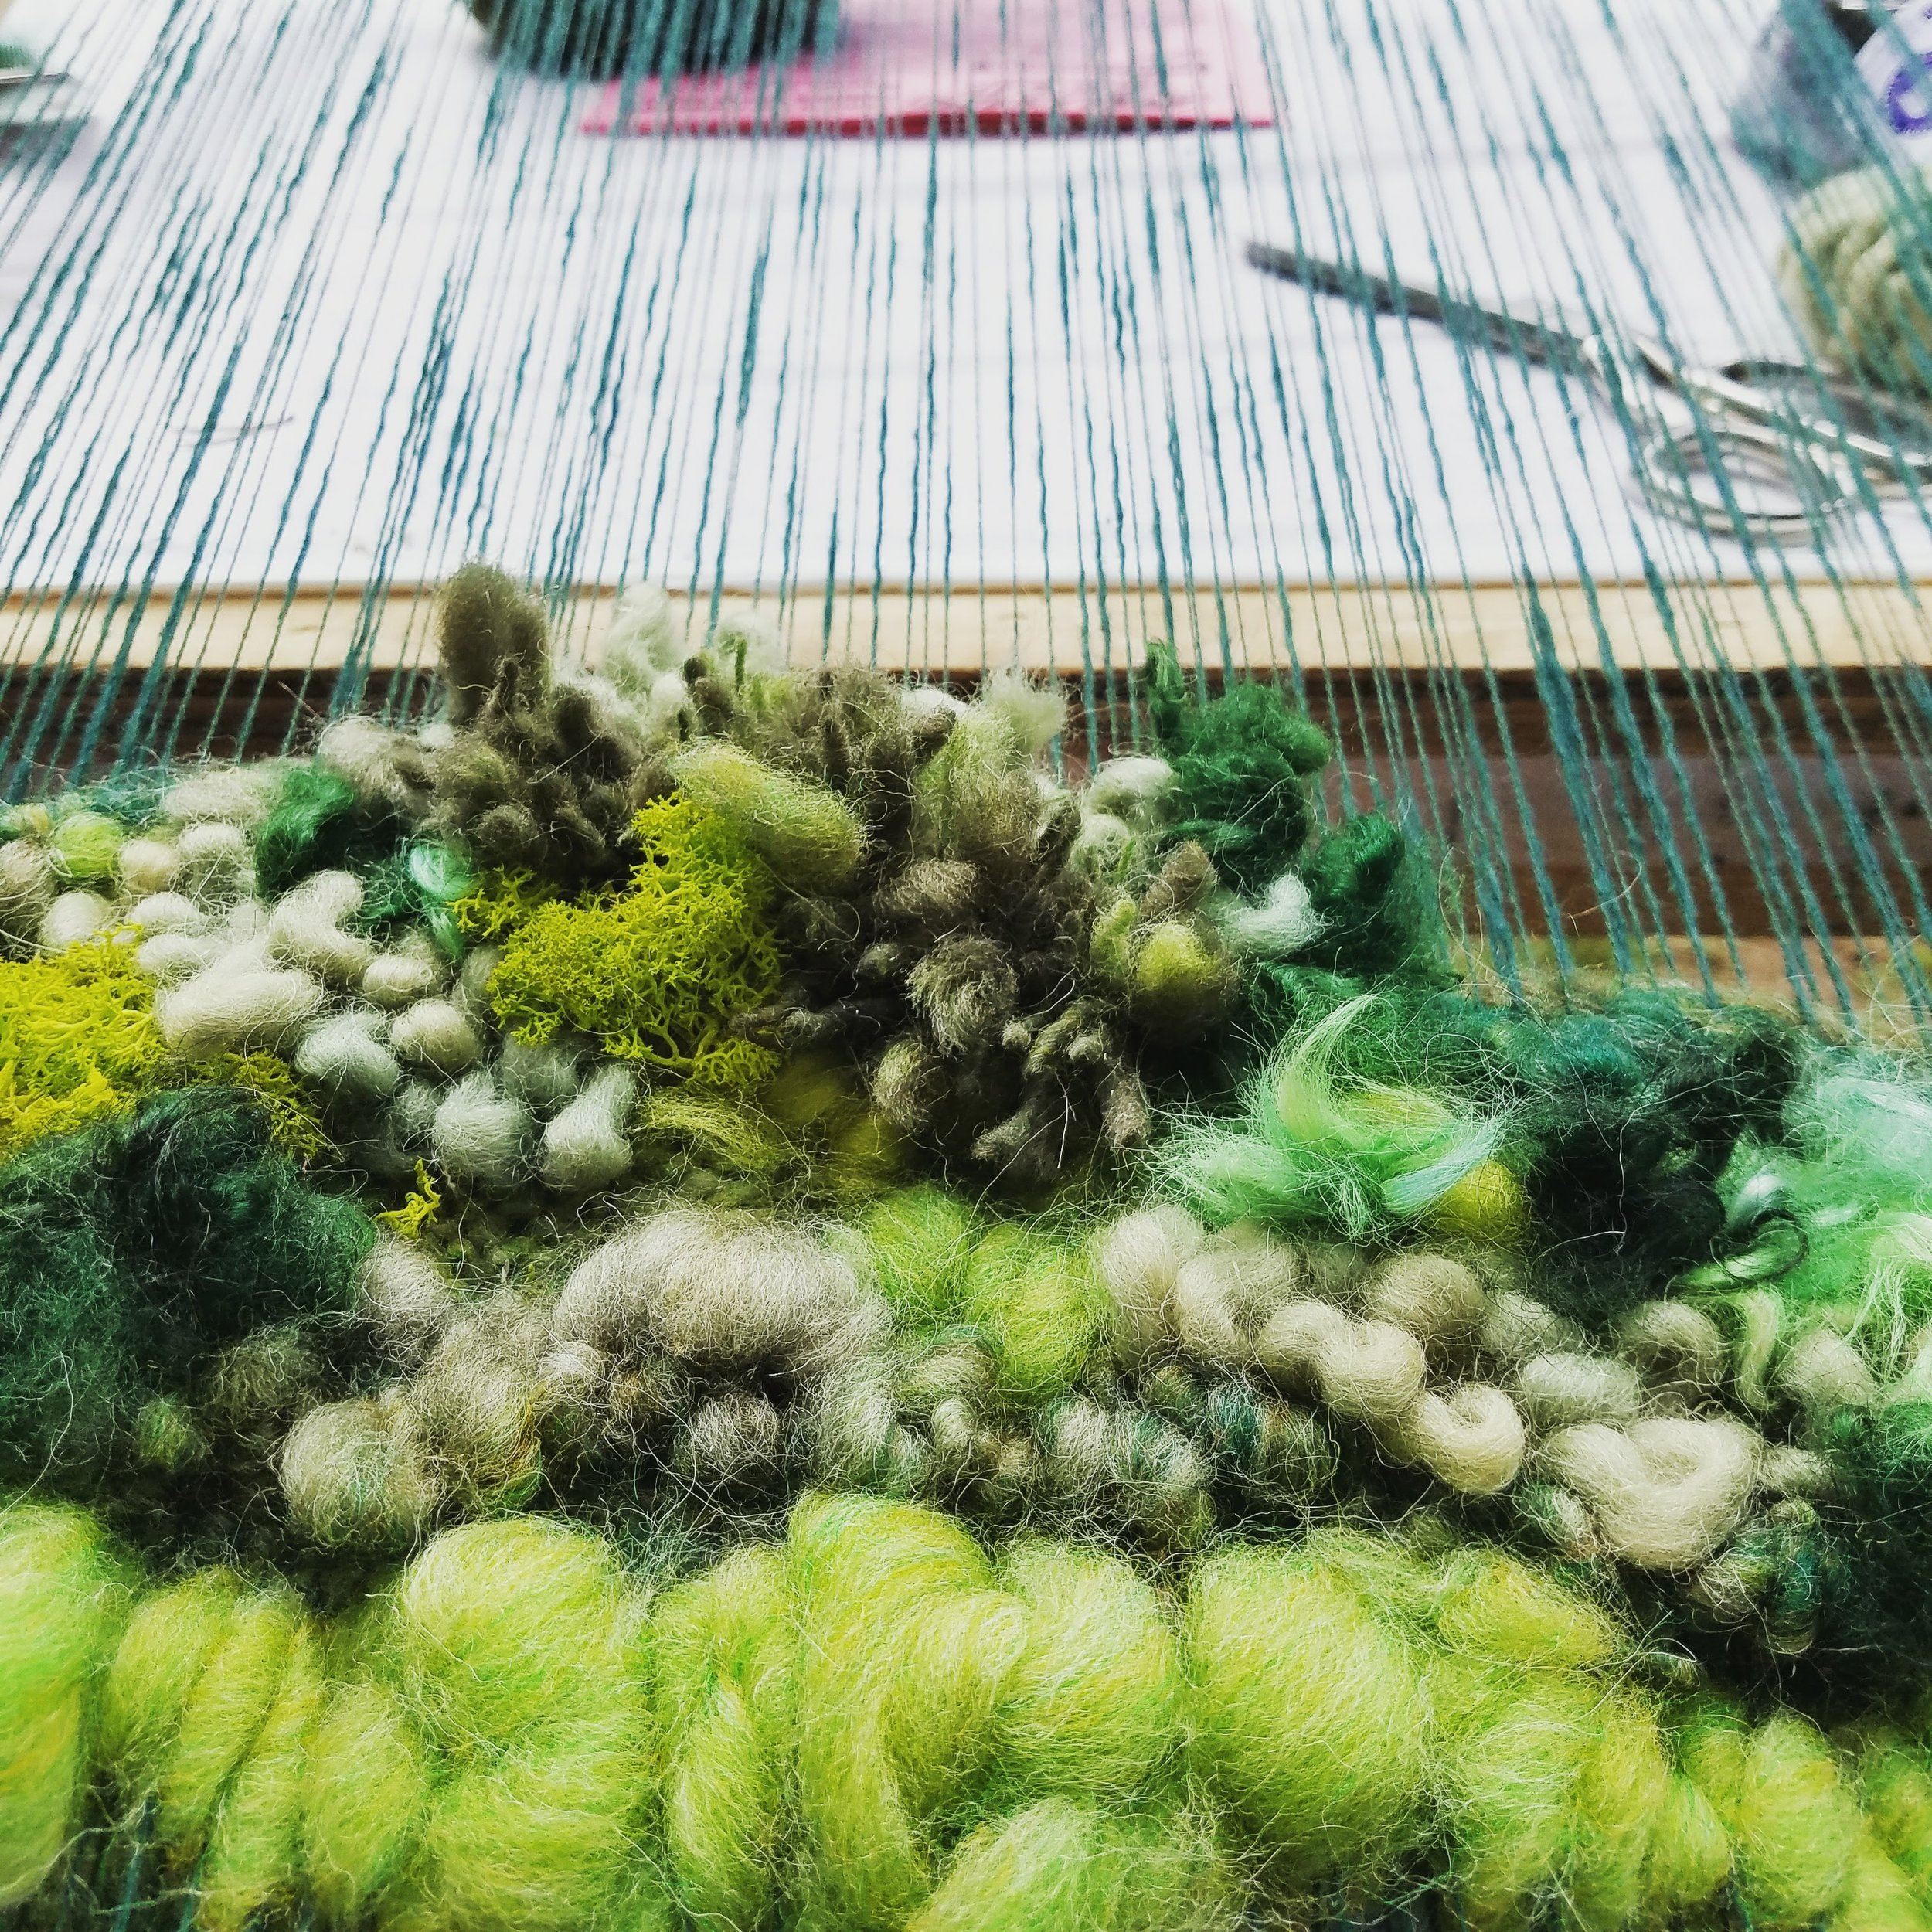 Forest Floor Weavings - Each forest floor weaving is made with a variety of materials, yarns, roving, dyed silks and wool locks as well as preserved reindeer moss. Every weaving is unique in its design and every weaving is reminiscent of mossy forest floors. Choose a custom size weaving for your home and bring the forest inside.